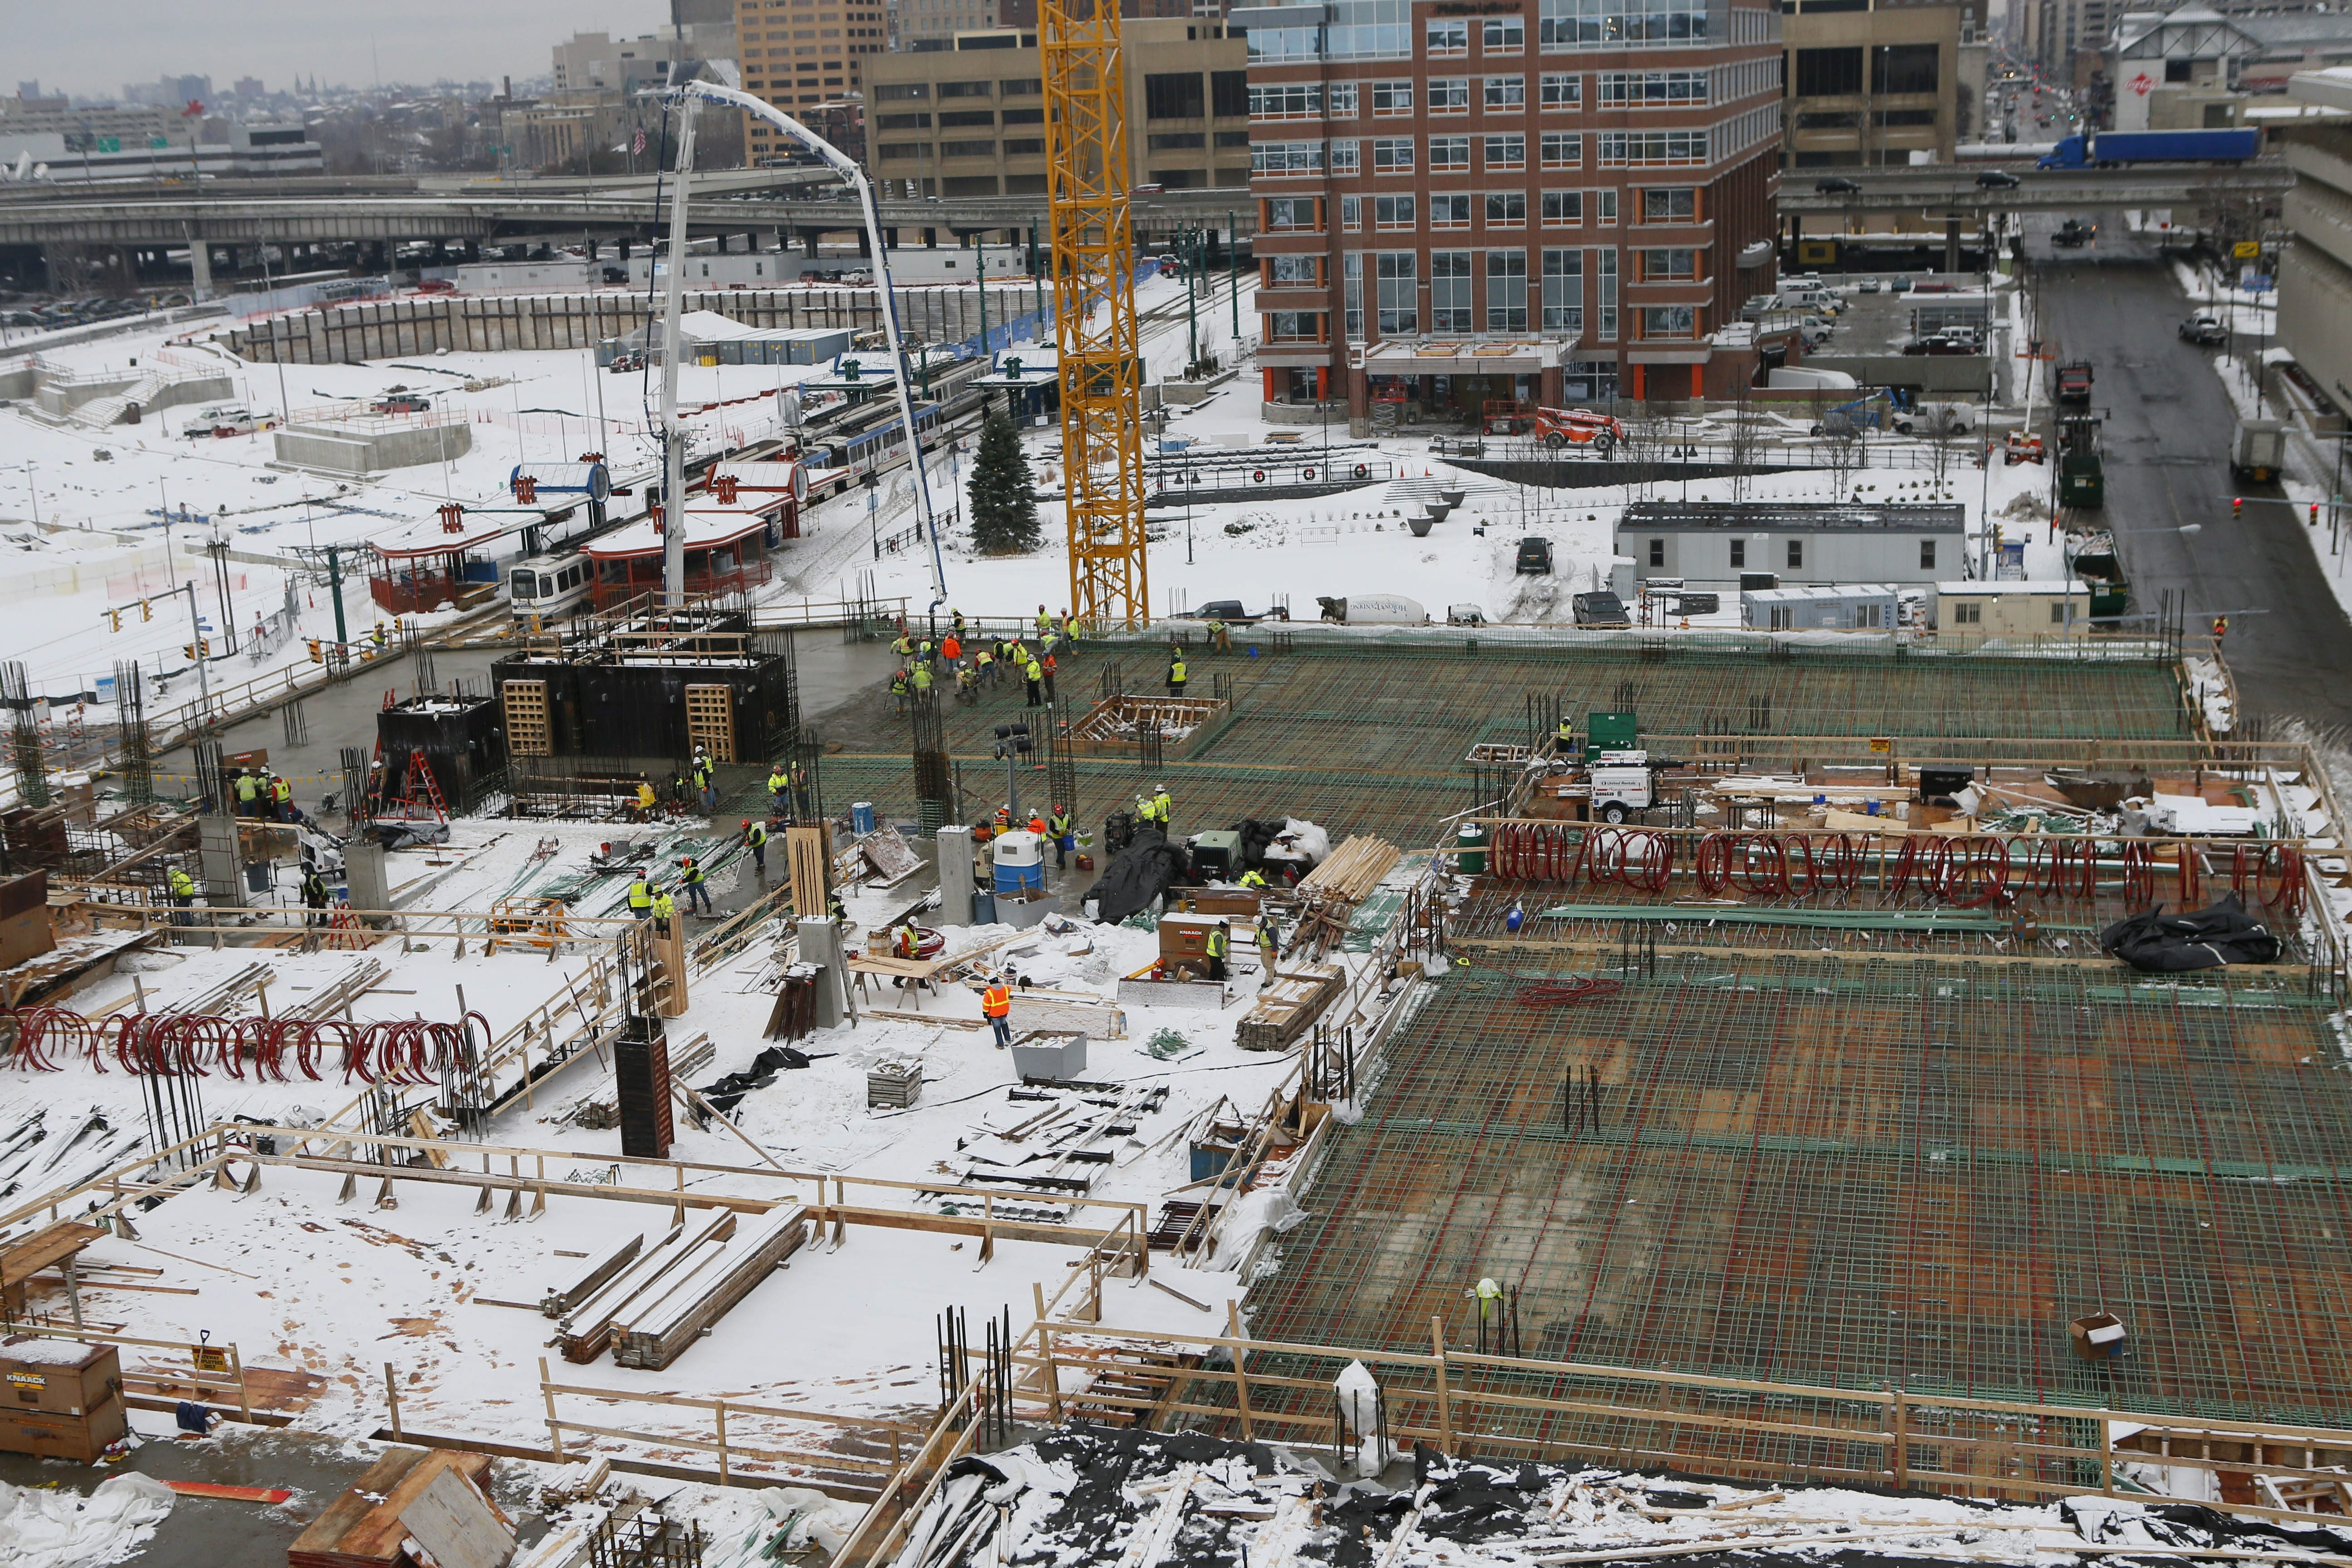 View from south tower crane reflects progress at HarborCenter,  as floors for the twin ice rinks and training facilities take shape.